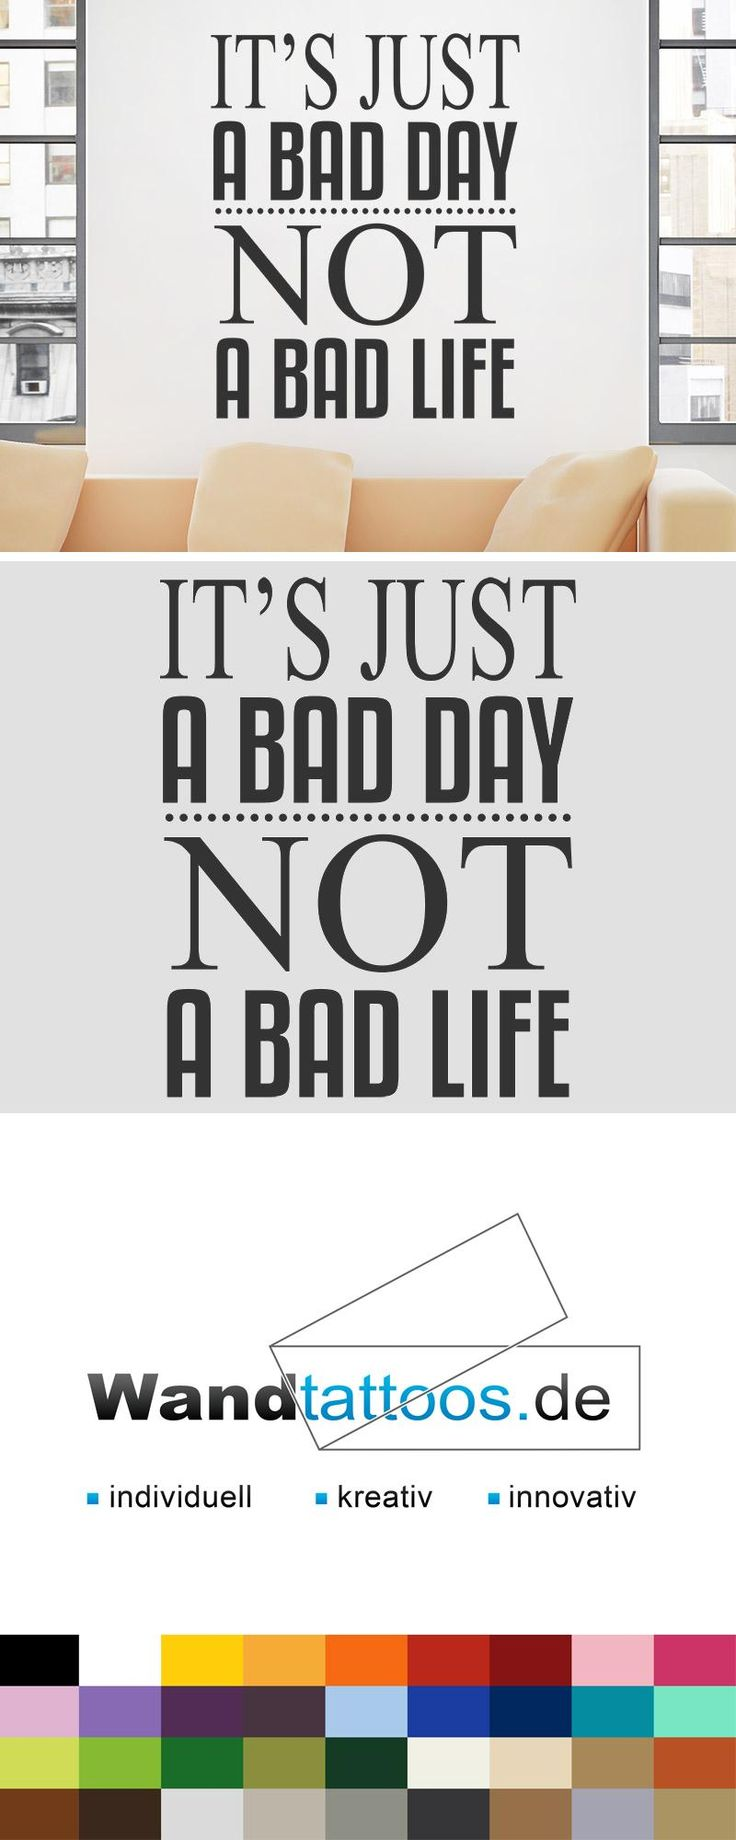 Good Wandtattoo It us just a bad day not a bad life